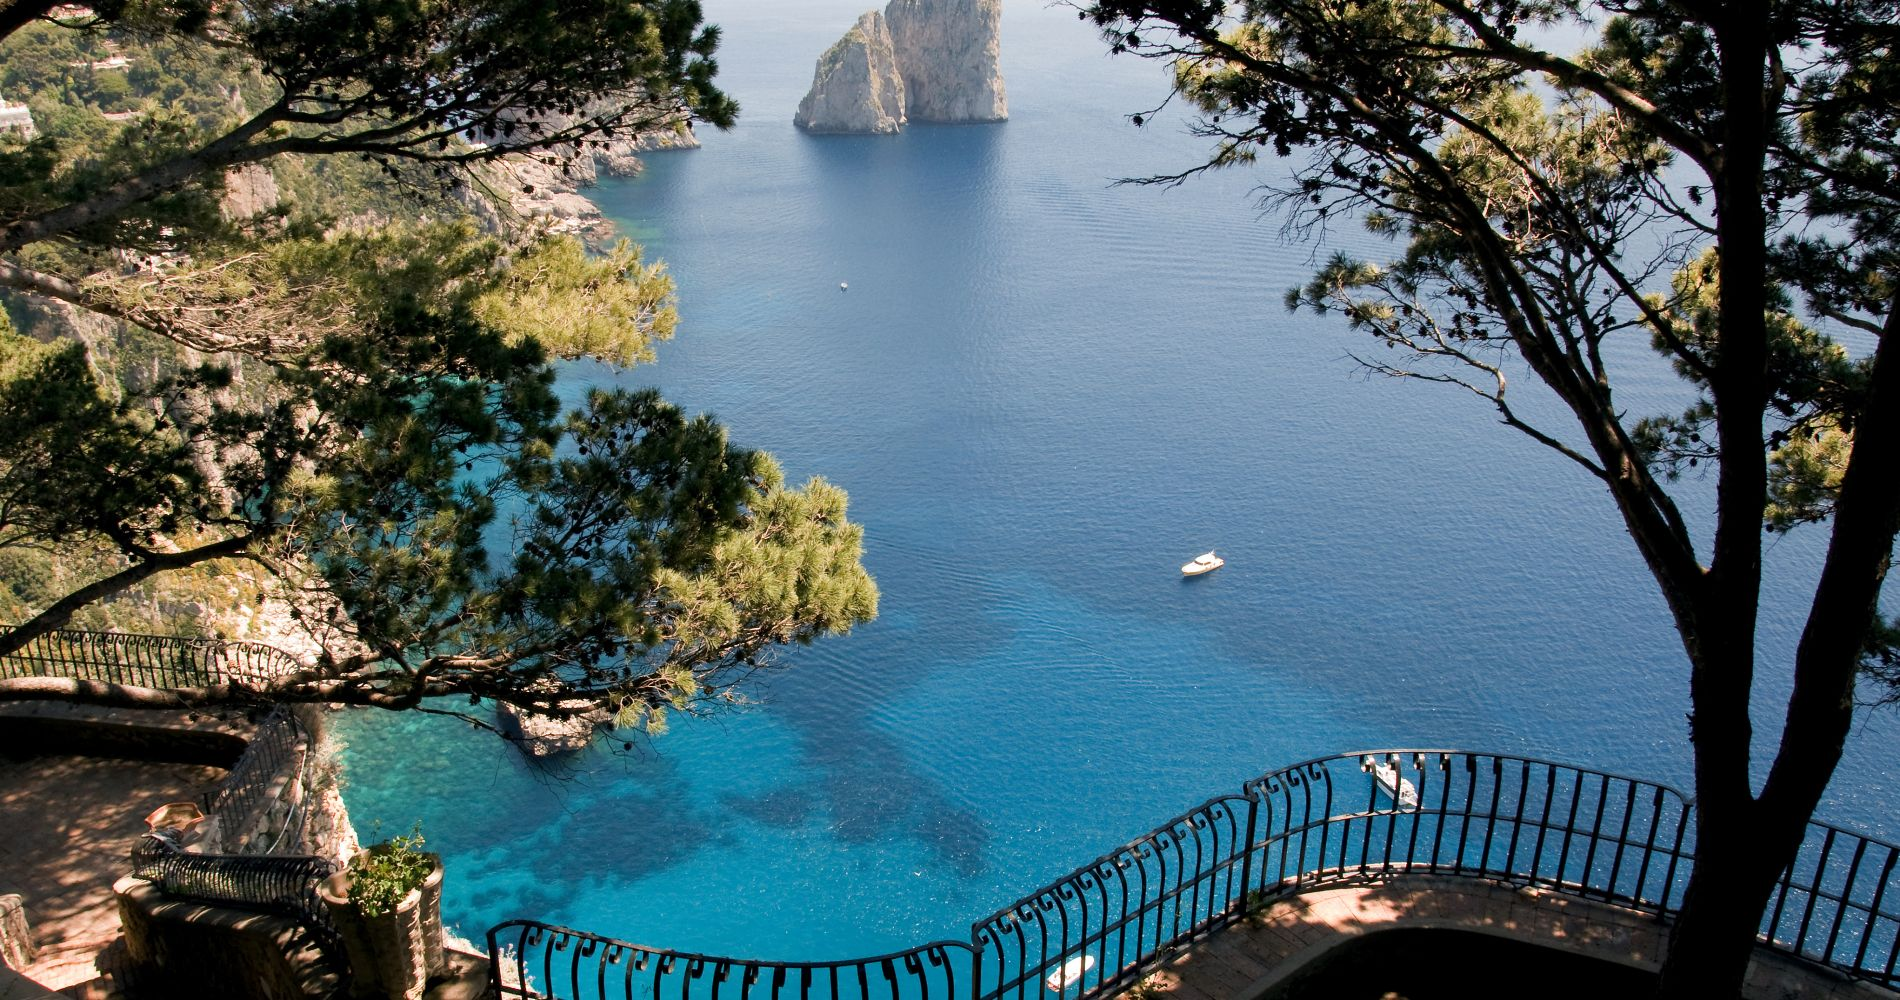 Full-Day Small Group Boat Experience from Sorrento